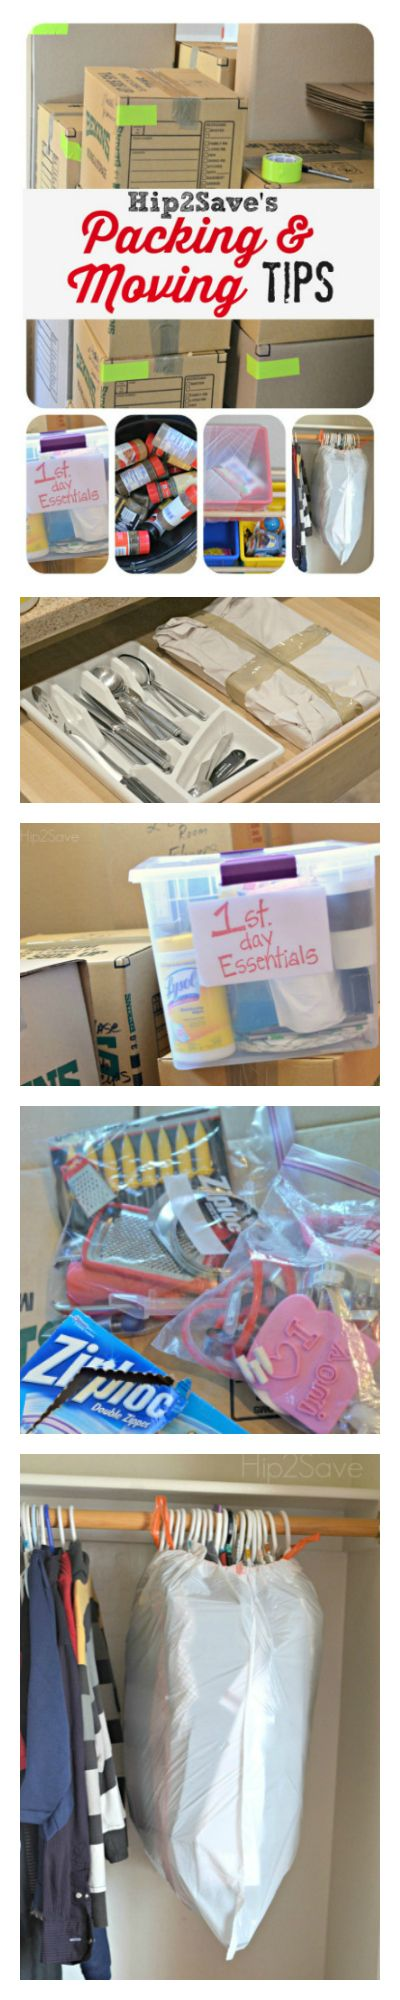 These wonderful packing tips and moving tips will make your life so much easier. much time they are going to save you.